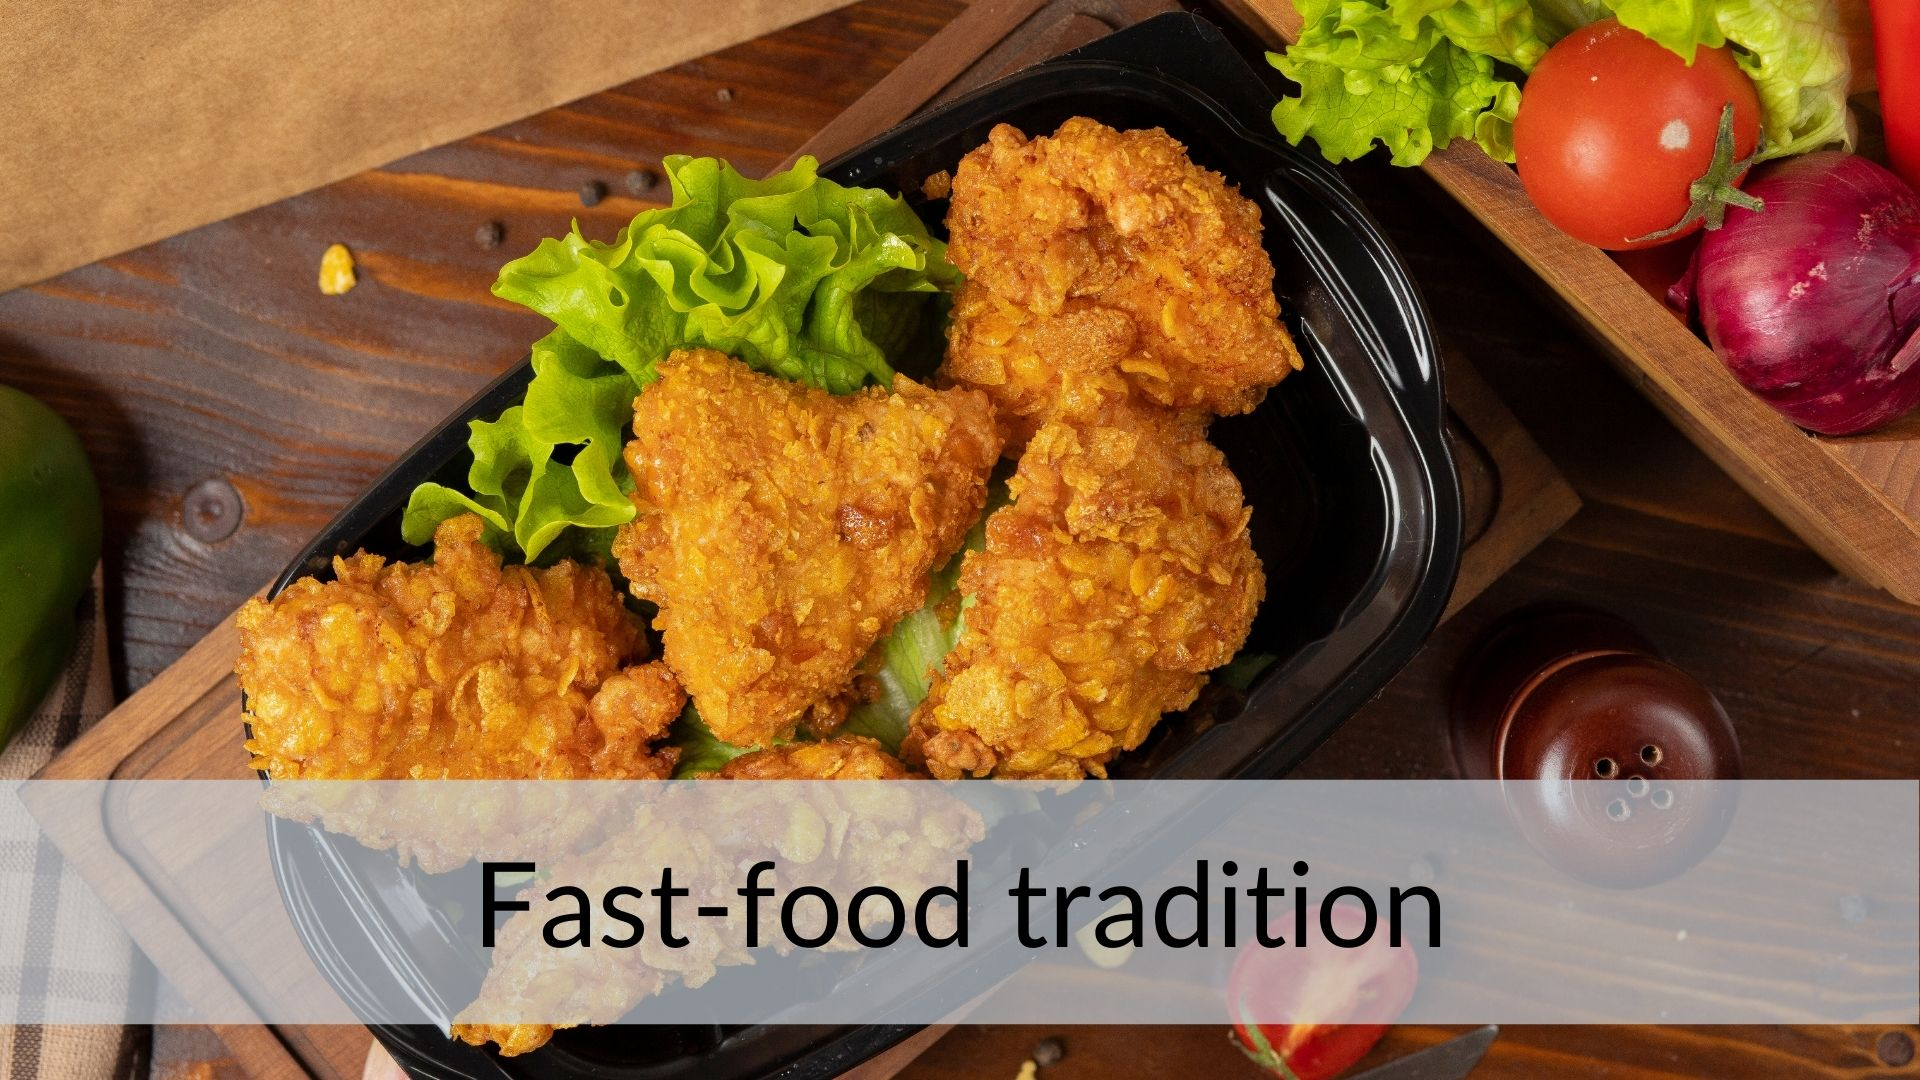 fast-food traditions